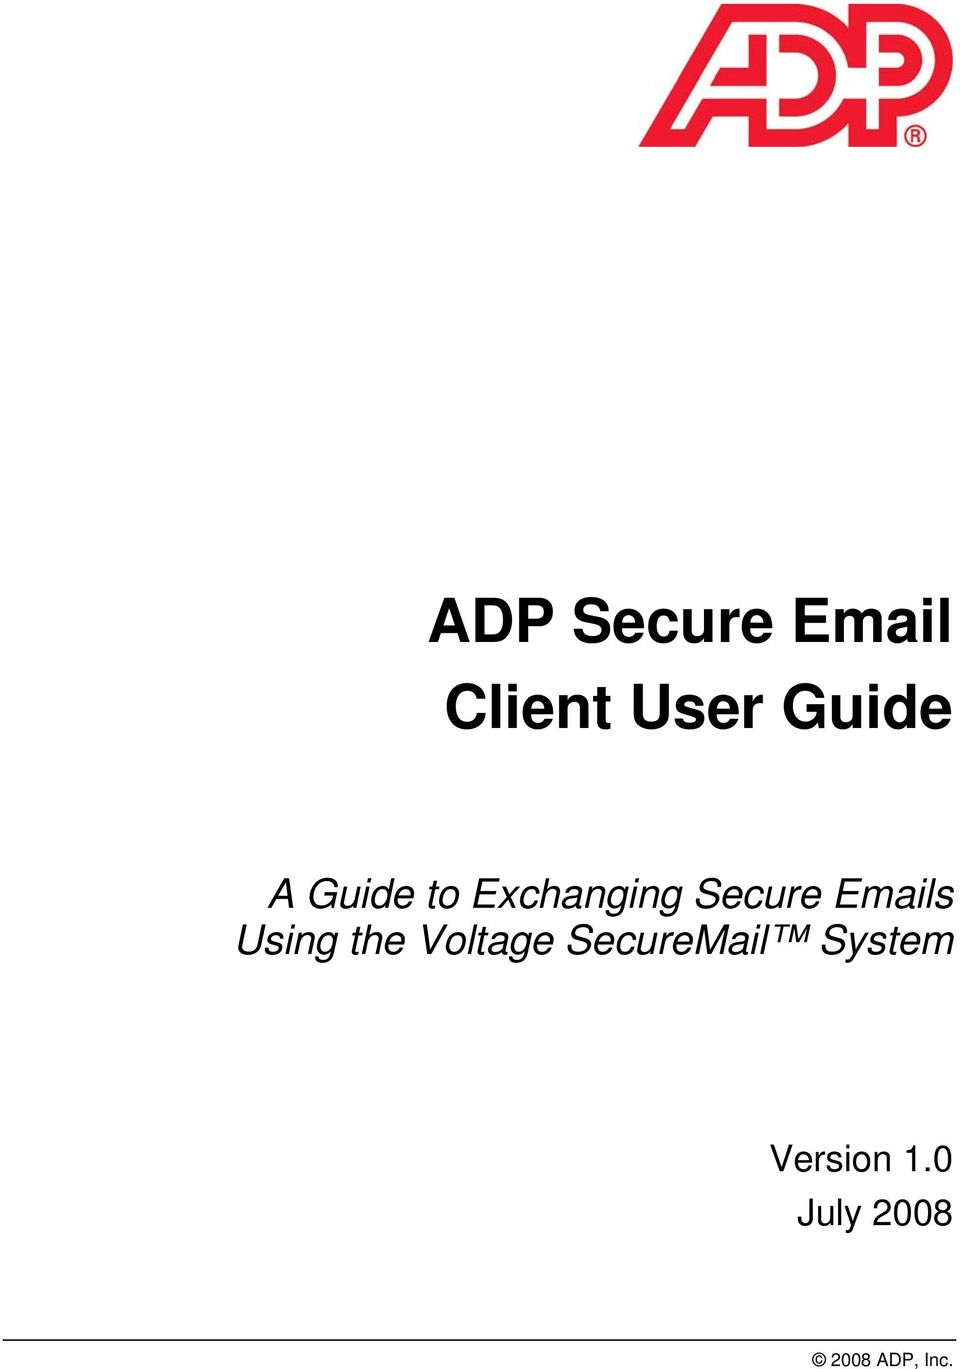 Using the Voltage SecureMail System